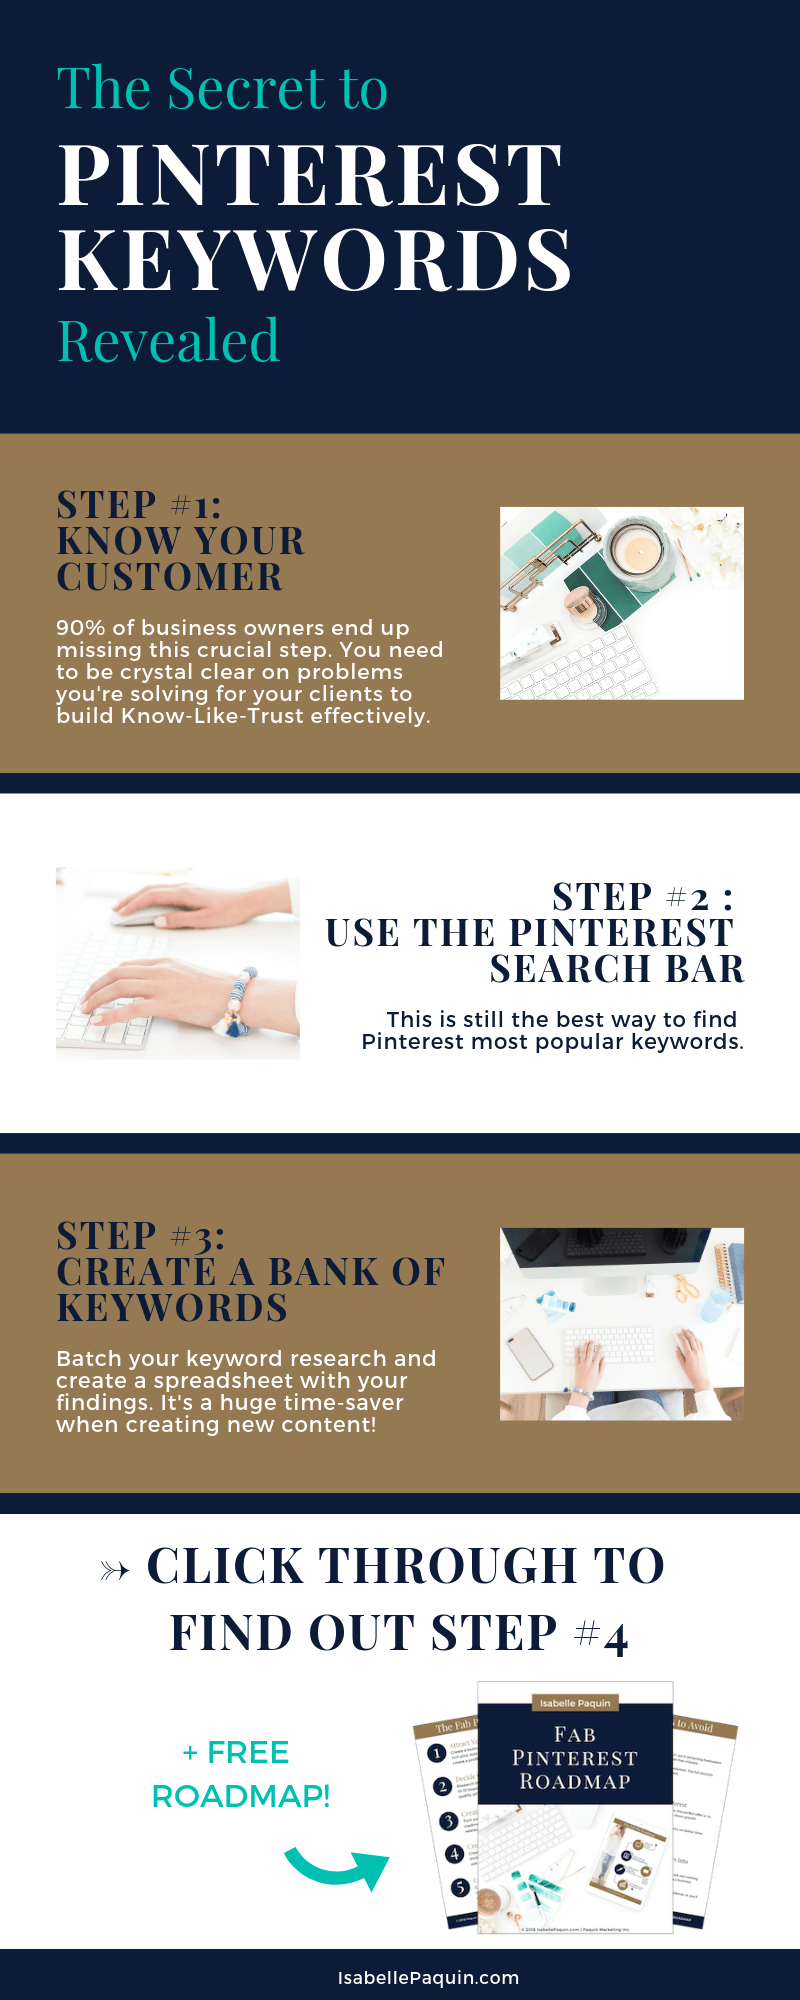 How to research Pinterest keywords the RIGHT way, so you can attract more quality leads to your small business using the power of social media. #pinterestmarketing #isabellepaquin